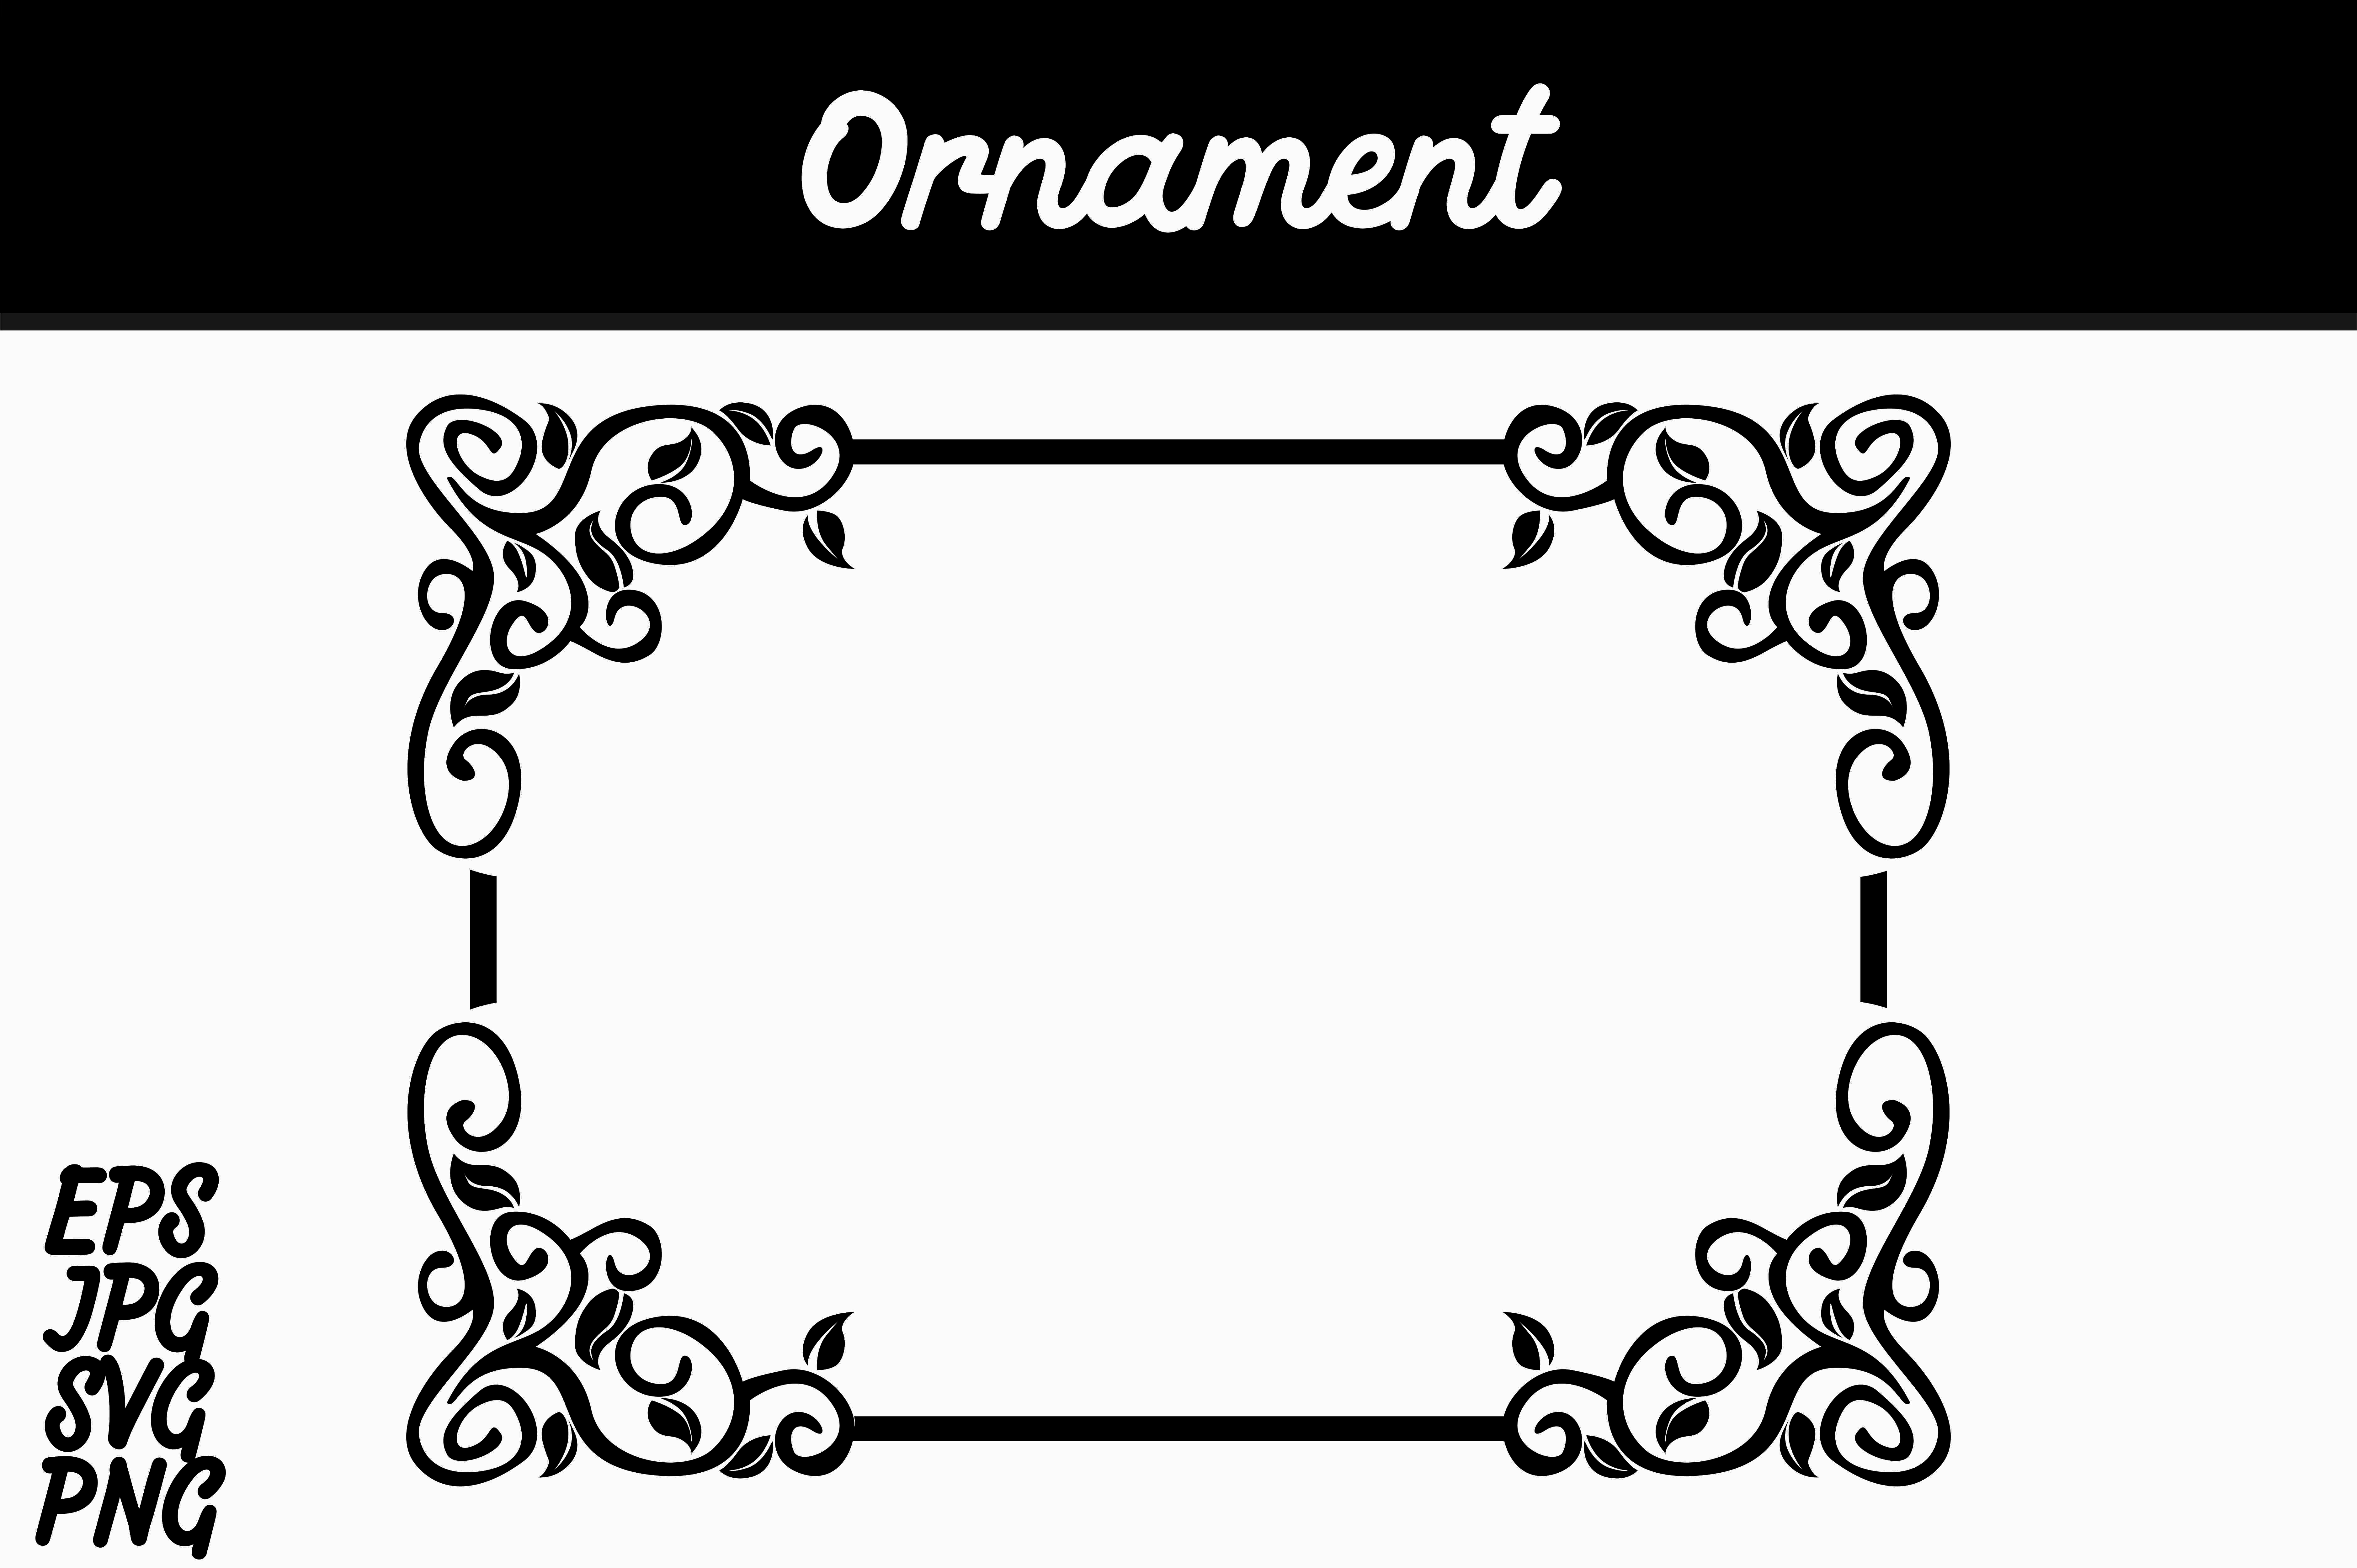 Download Free Border Ornament Svg Vector Image Graphic By Arief Sapta Adjie for Cricut Explore, Silhouette and other cutting machines.